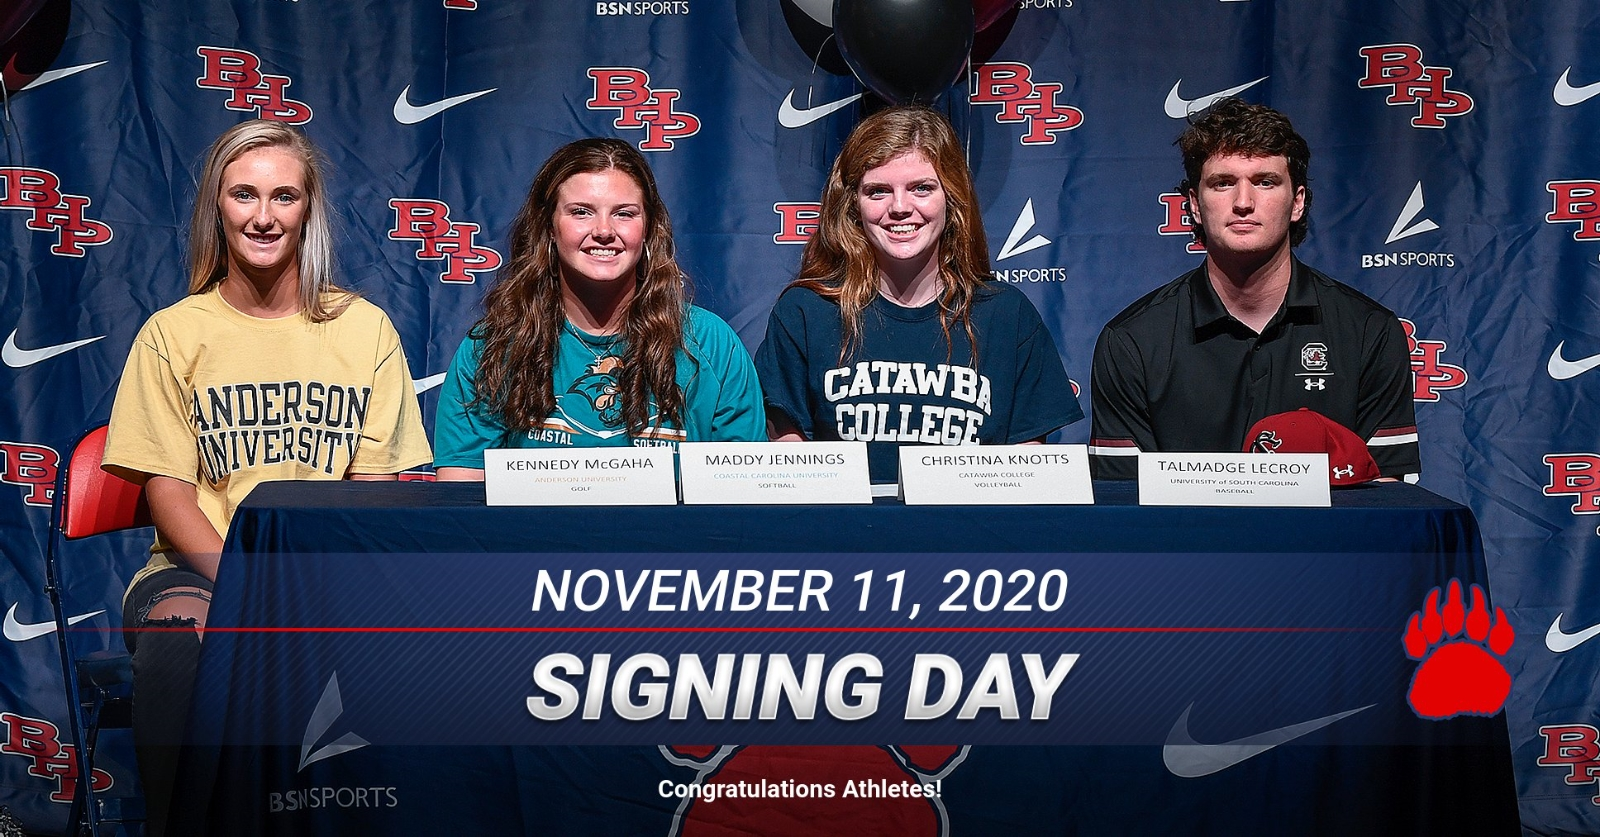 Congratulations to our Athletes who signed their National Letter of Intent today! Go Bears!